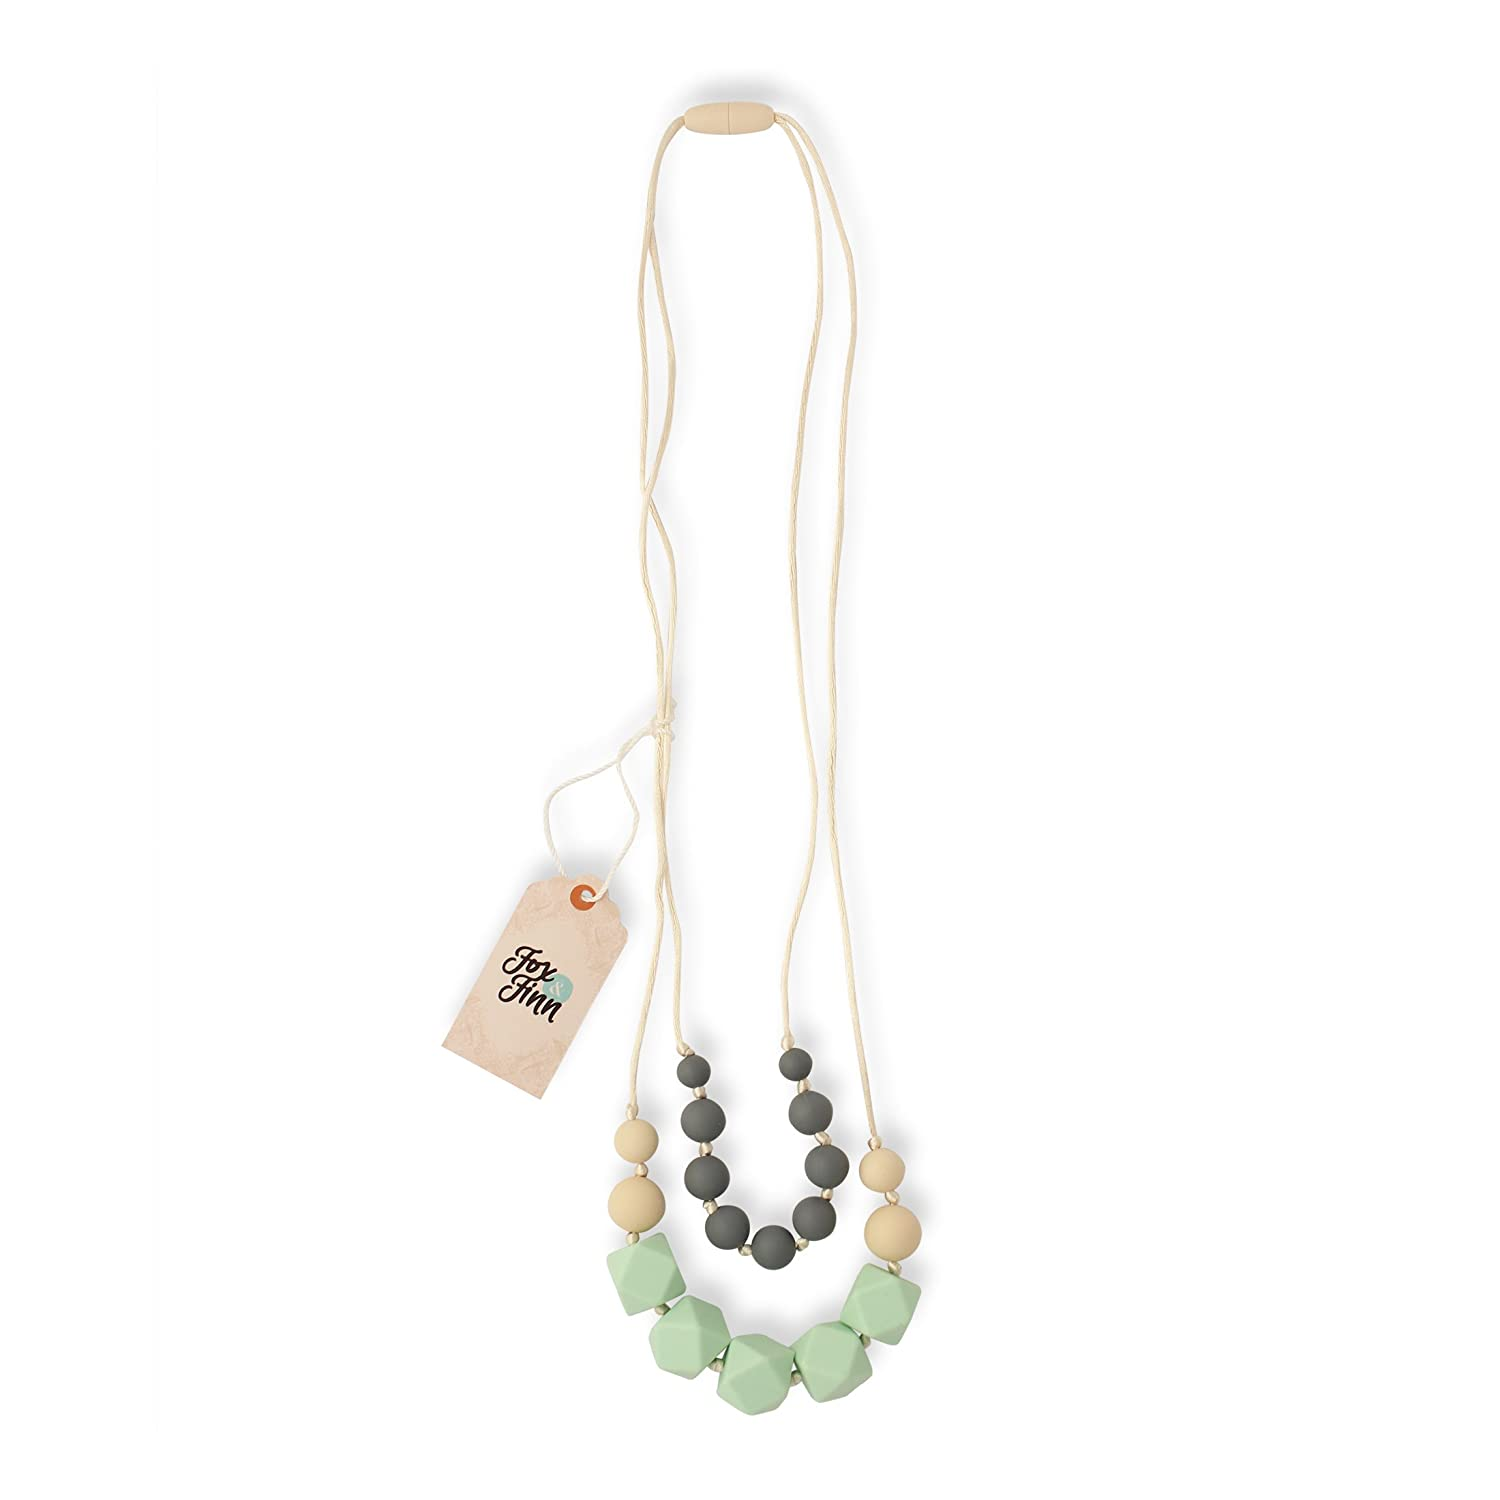 Fox & Finn 'Isabella' Silicone Teething Necklace for Babies   Safety  Knotted Silk Rope   Does Not Pull Hair Out   14 Inch Drop (mint + smoke +  latte)